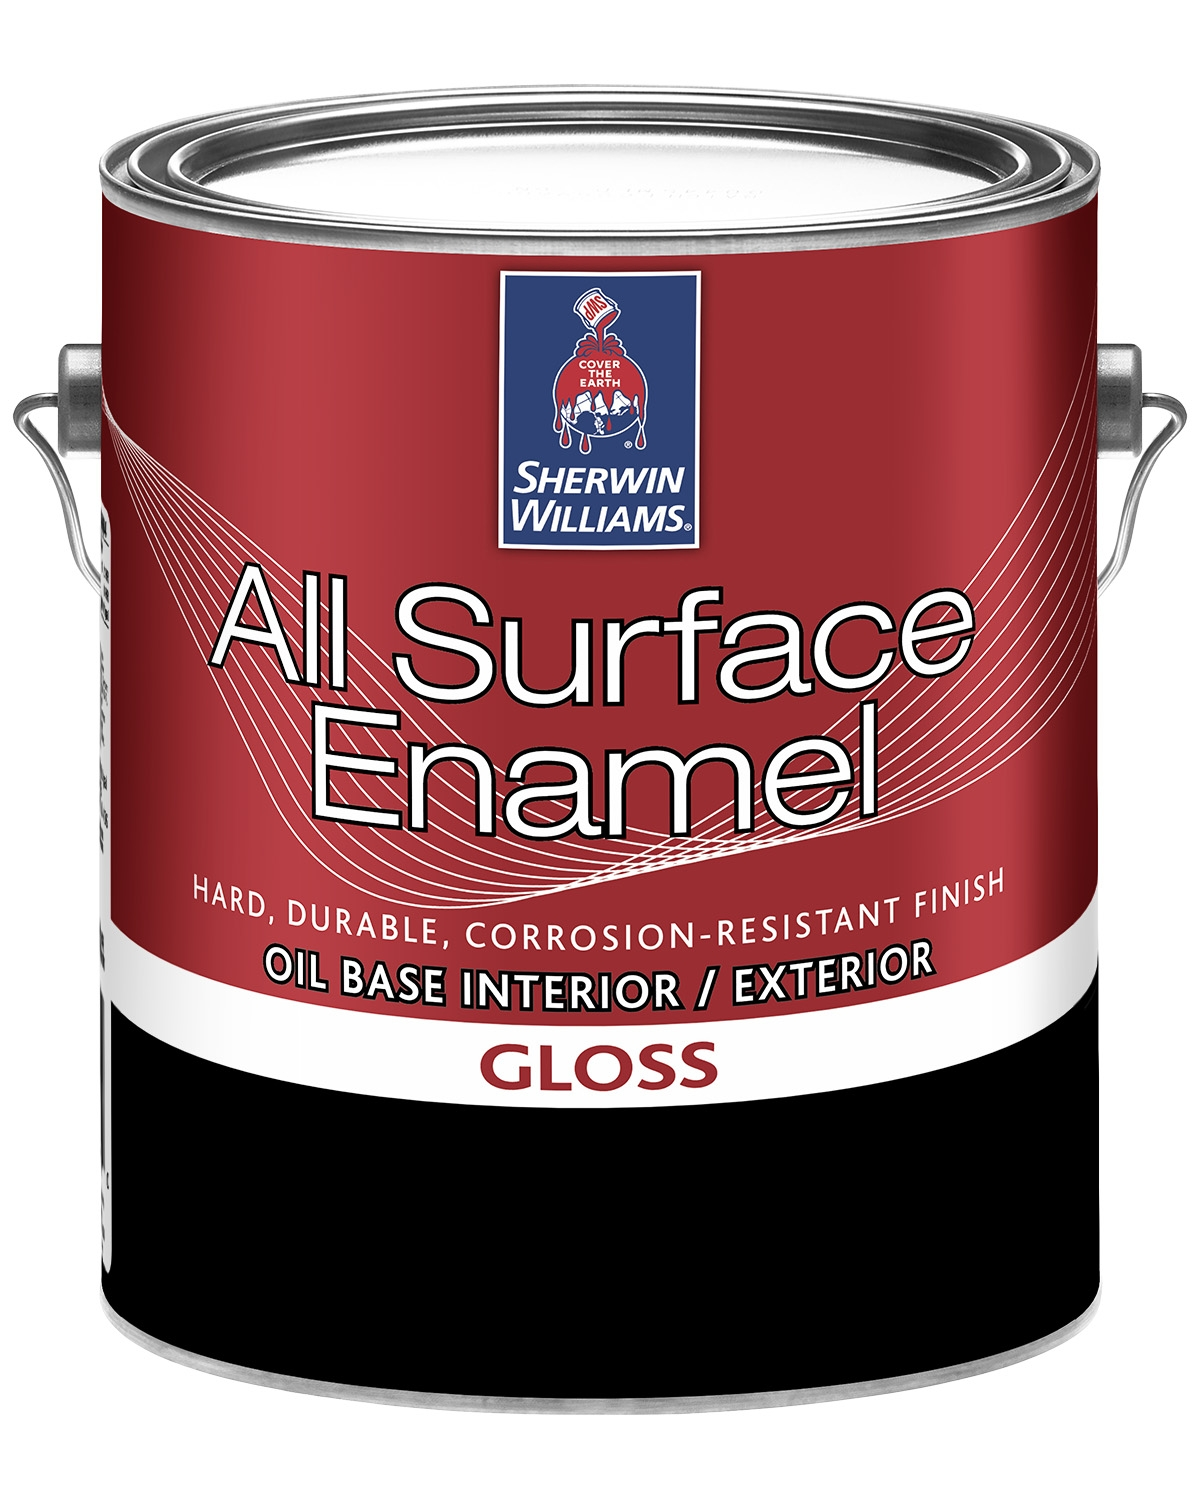 All Surface Enamel Oil Base Sherwin Williams